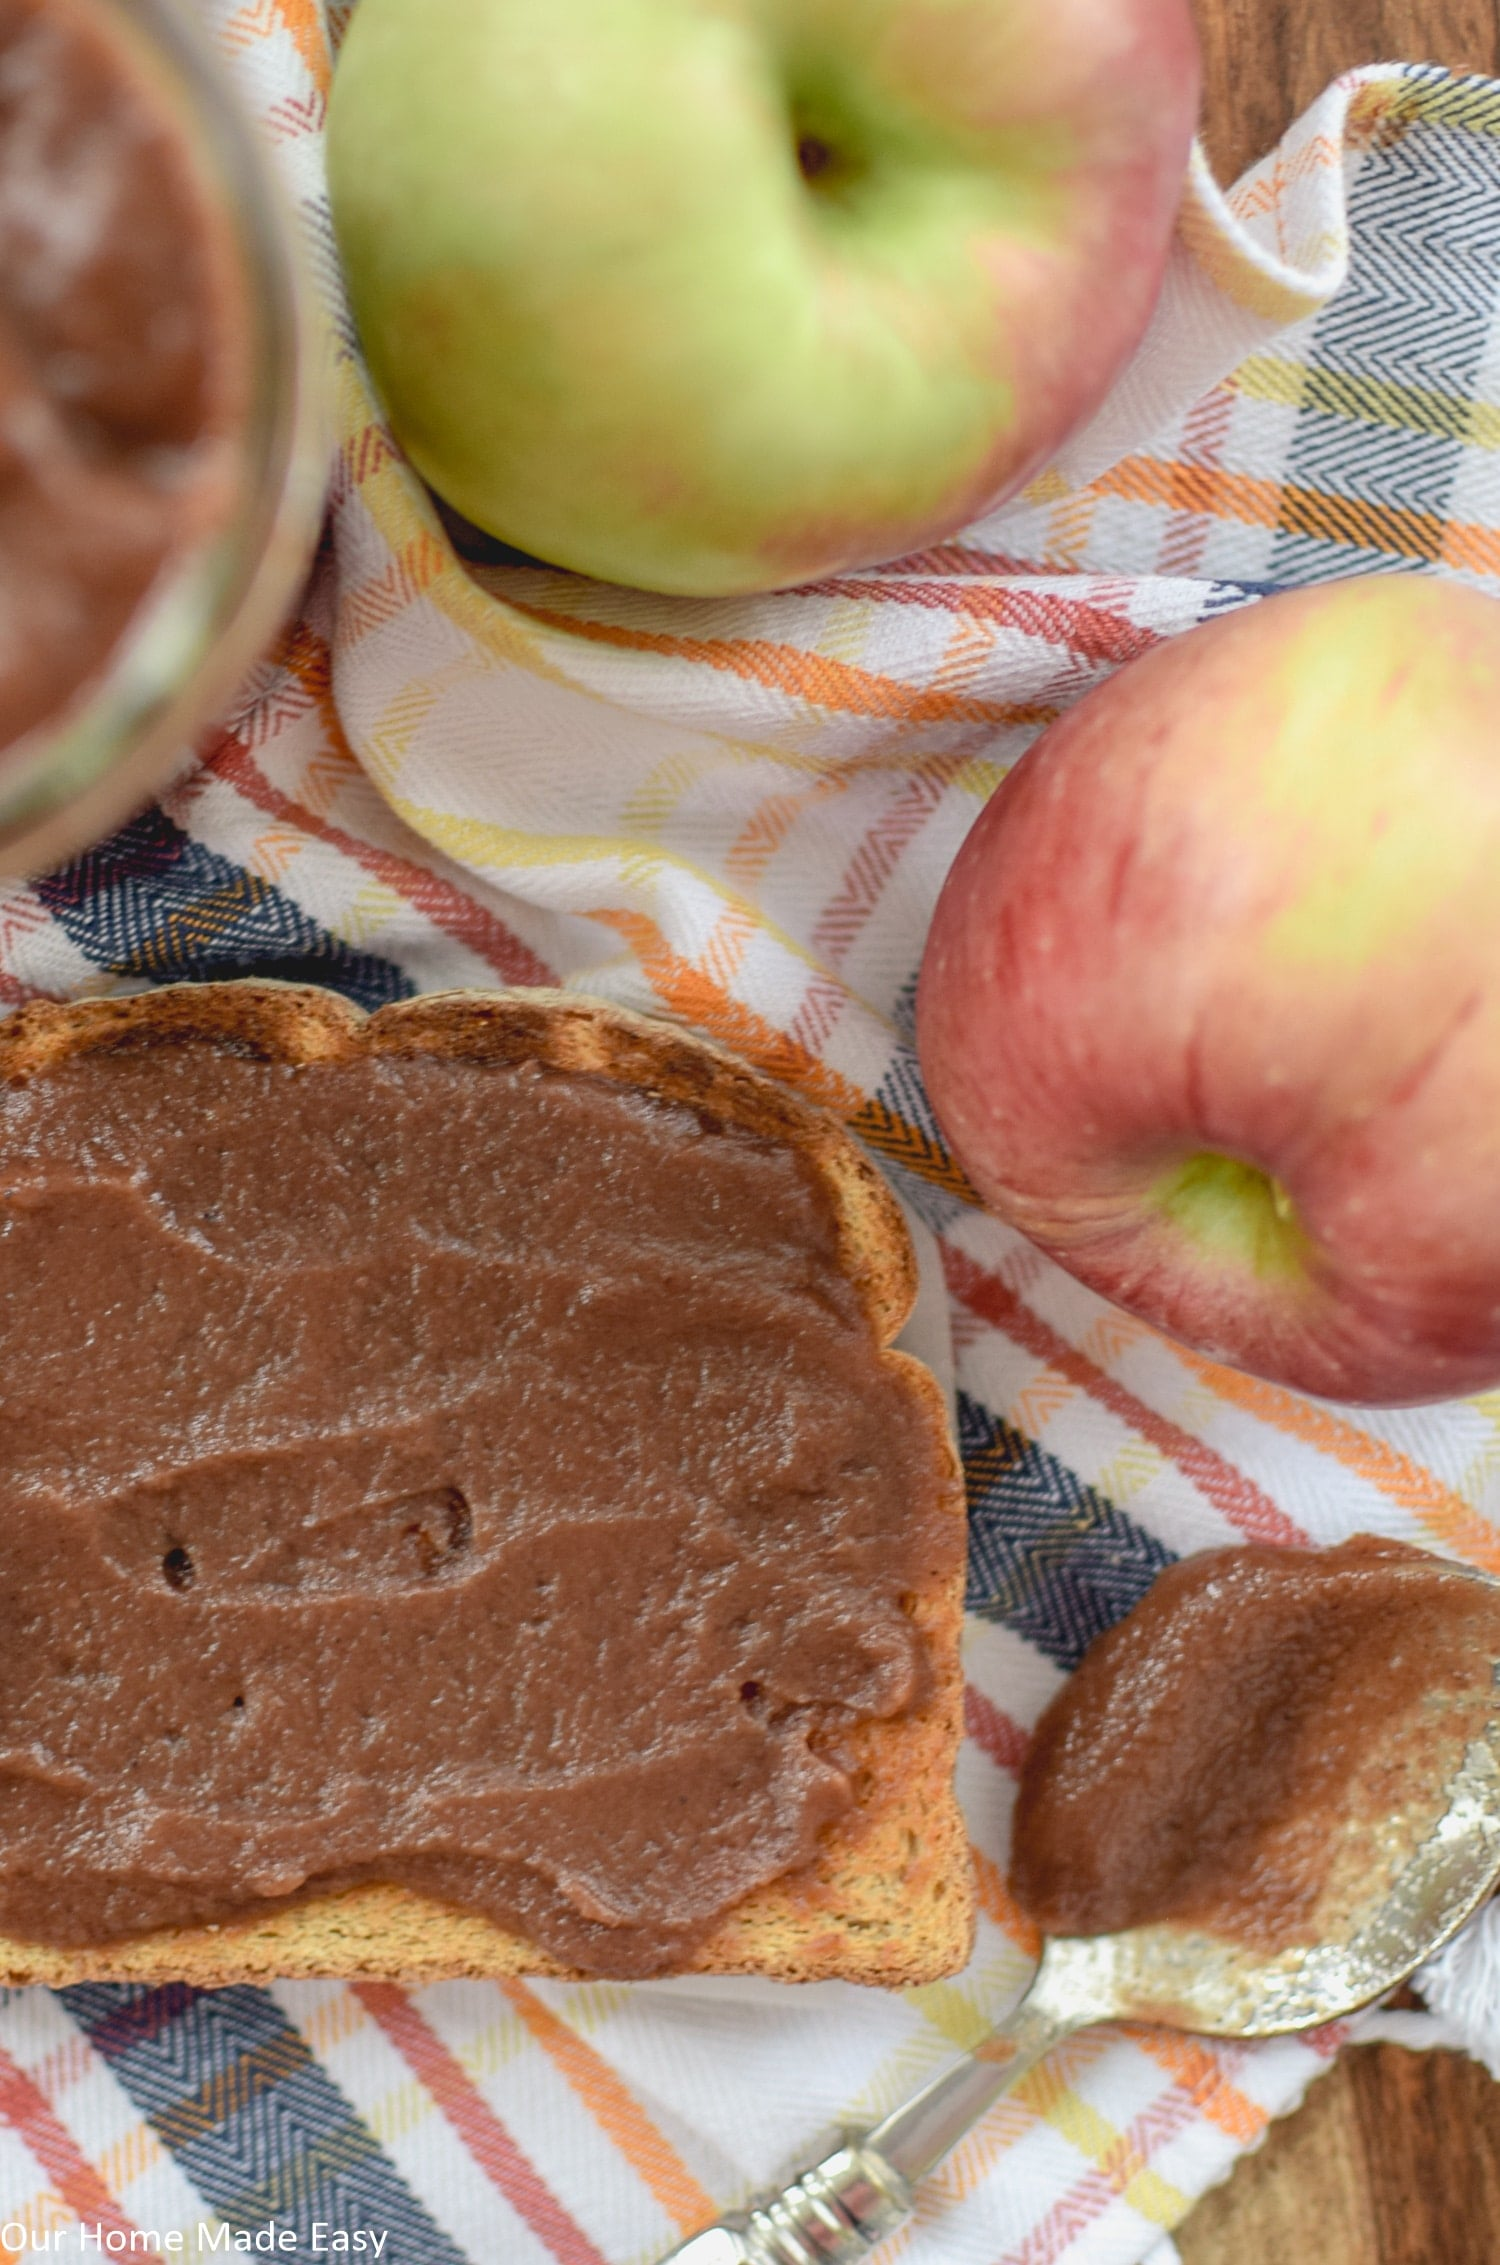 This homemade crockpot apple butter recipe only needs a few ingredients